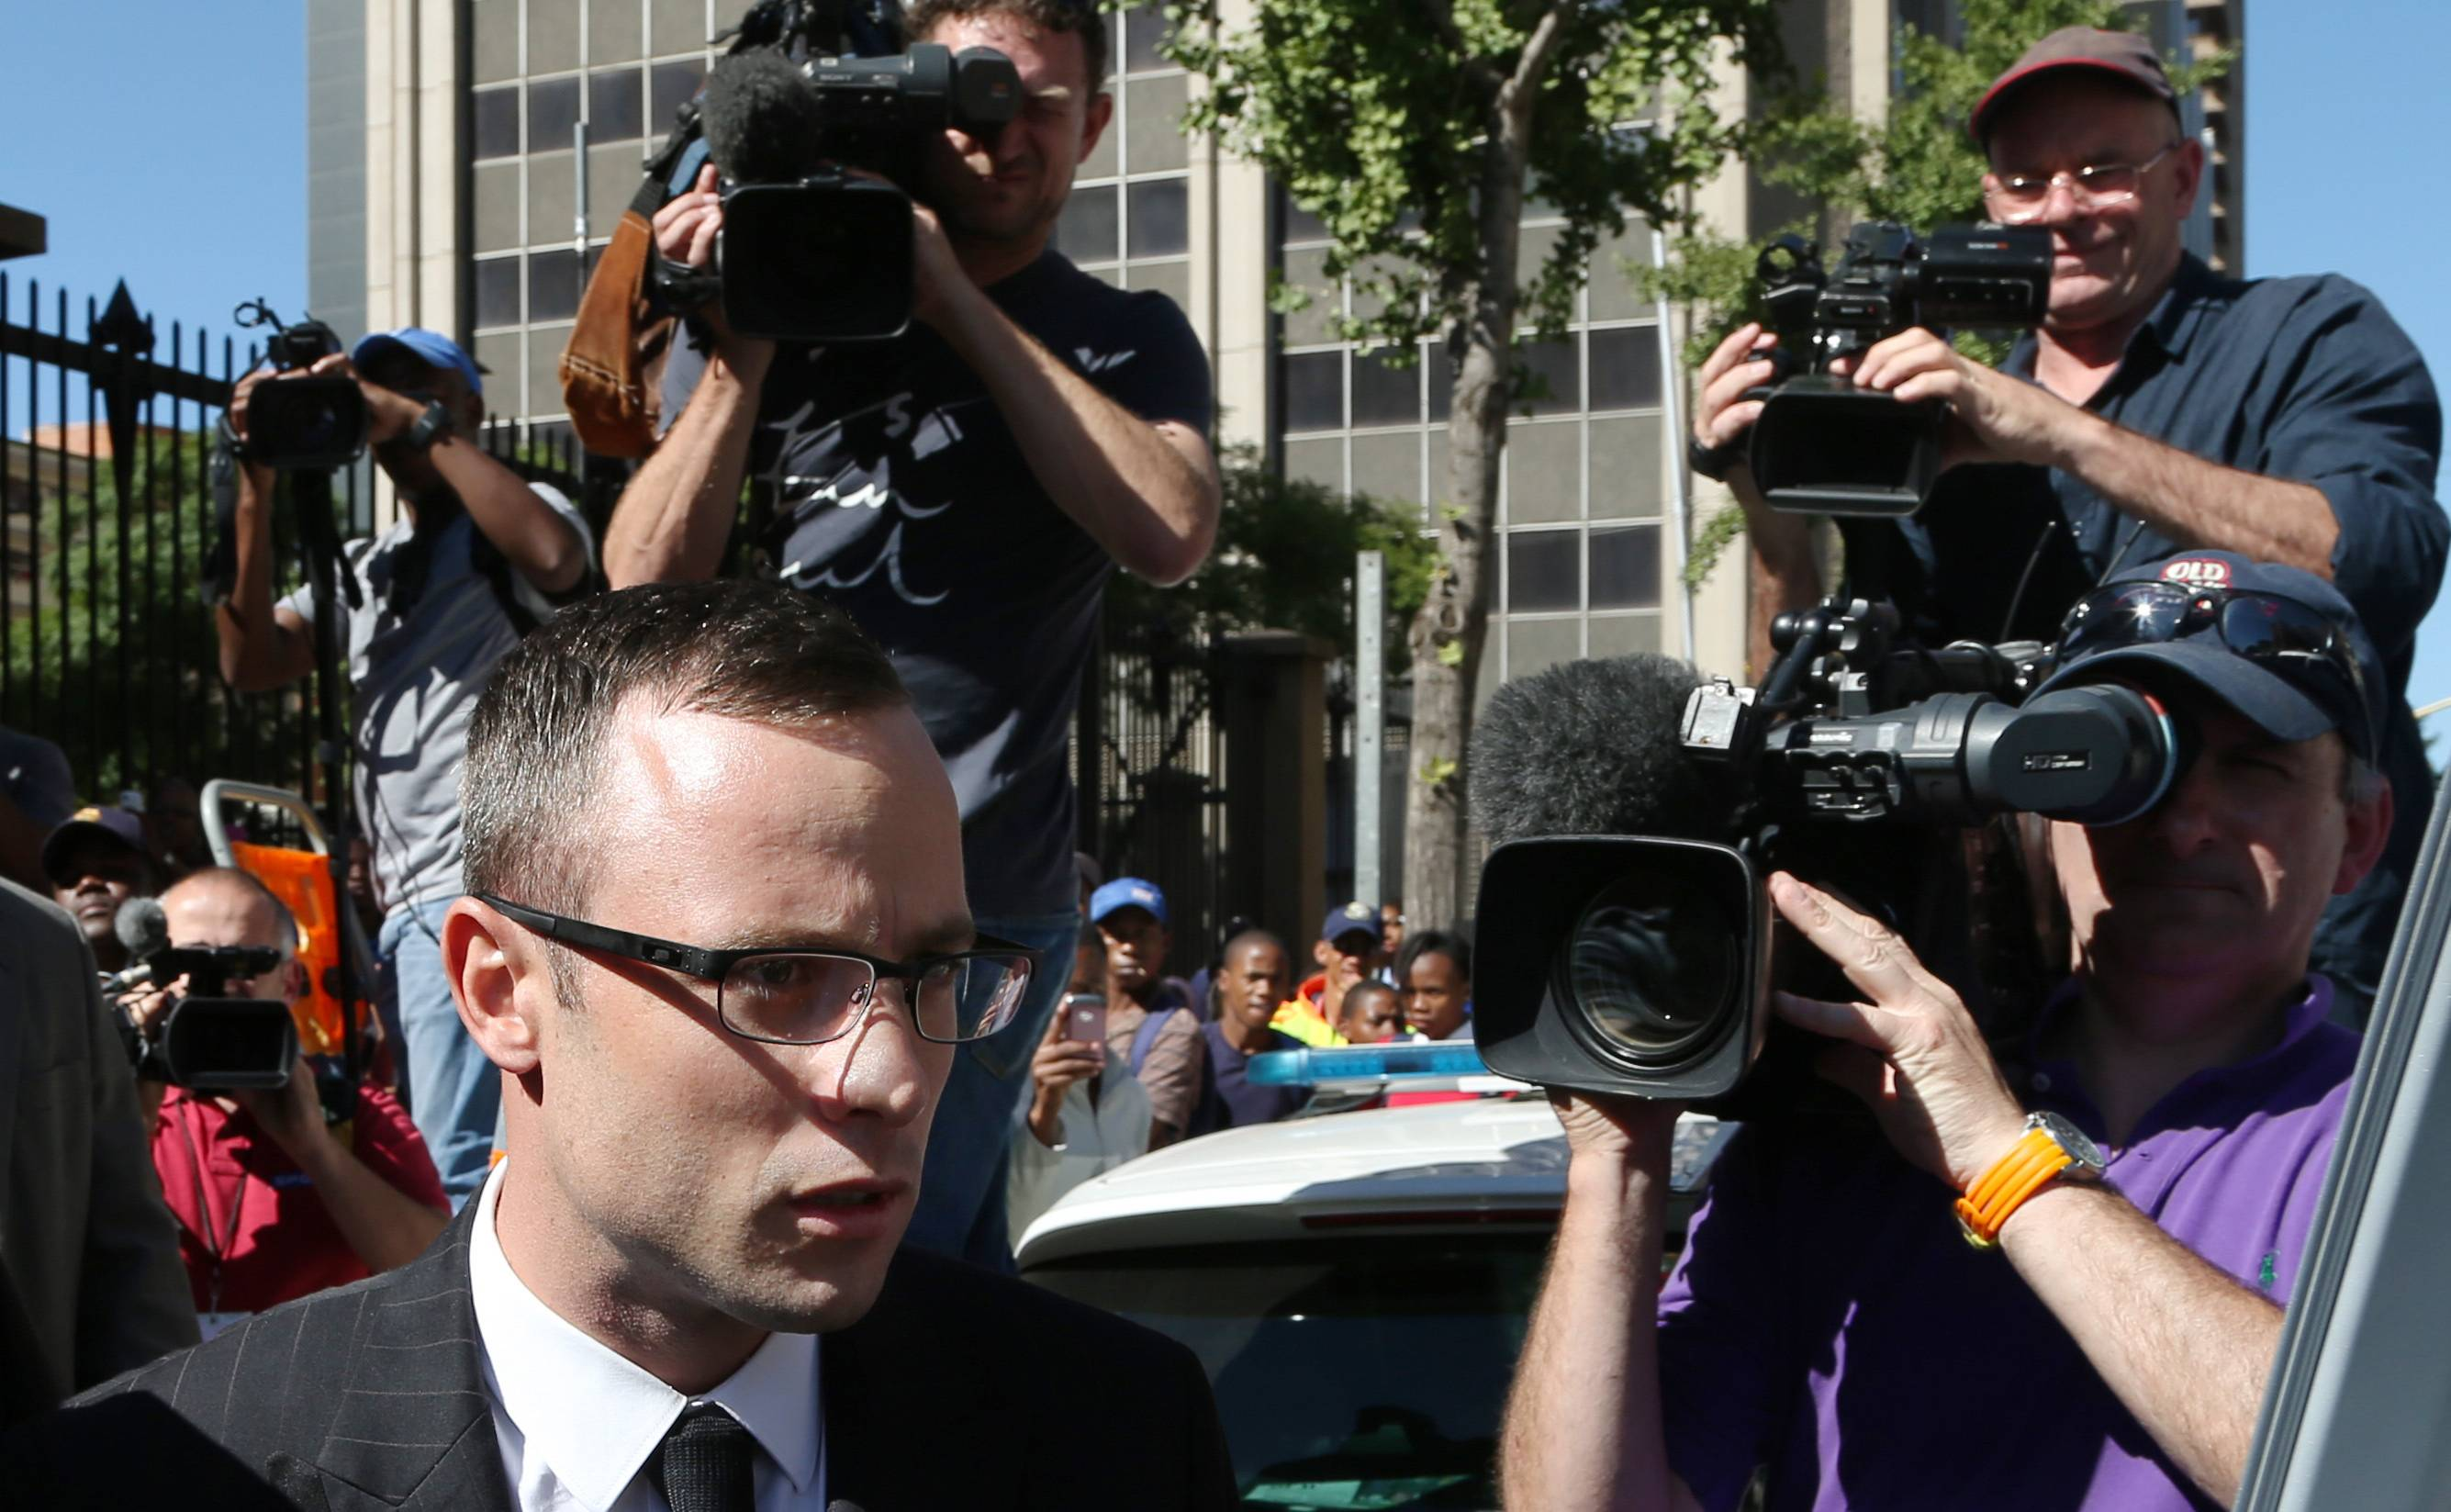 Oscar Pistorius leaves the high court in Pretoria, South Africa, March 25. The murder trial of Pistorius is expected to enter a critical phase of testimony Monday as the defense attempts to overcome a faltering start and show how the disabled Olympic athlete fatally shot girlfriend Reeva Steenkamp by mistake because he was overwhelmed by a long-held fear of violent crime.